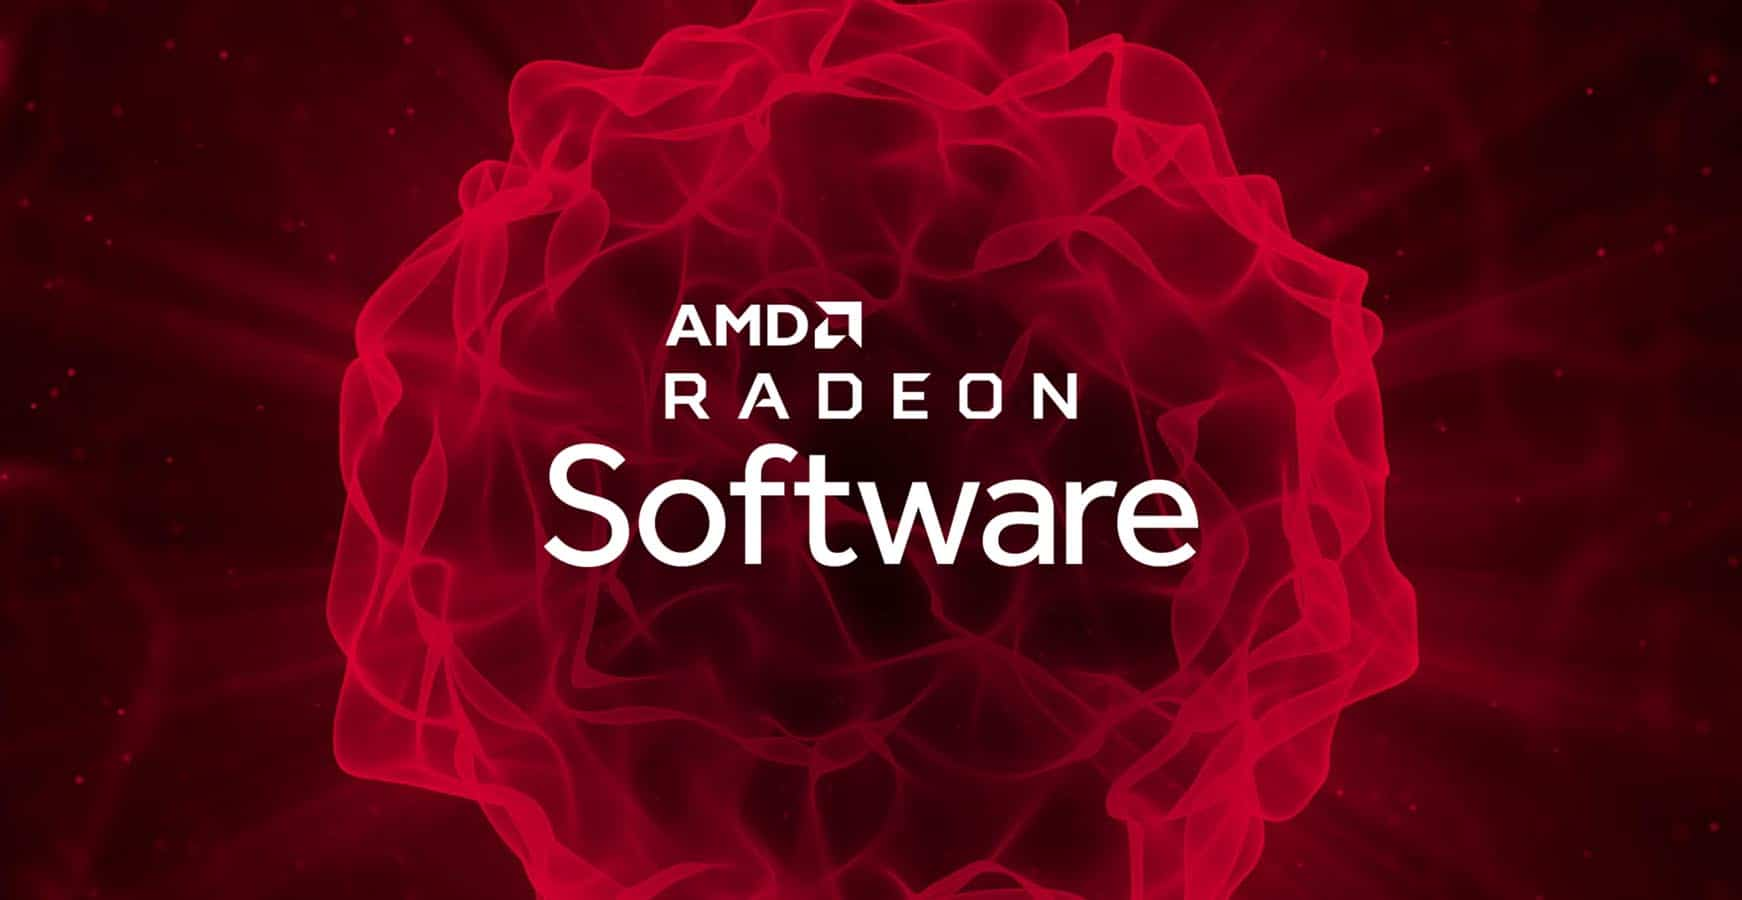 AMD presenta el nuevo AMD Radeon Software Adrenalin 2019 Edition